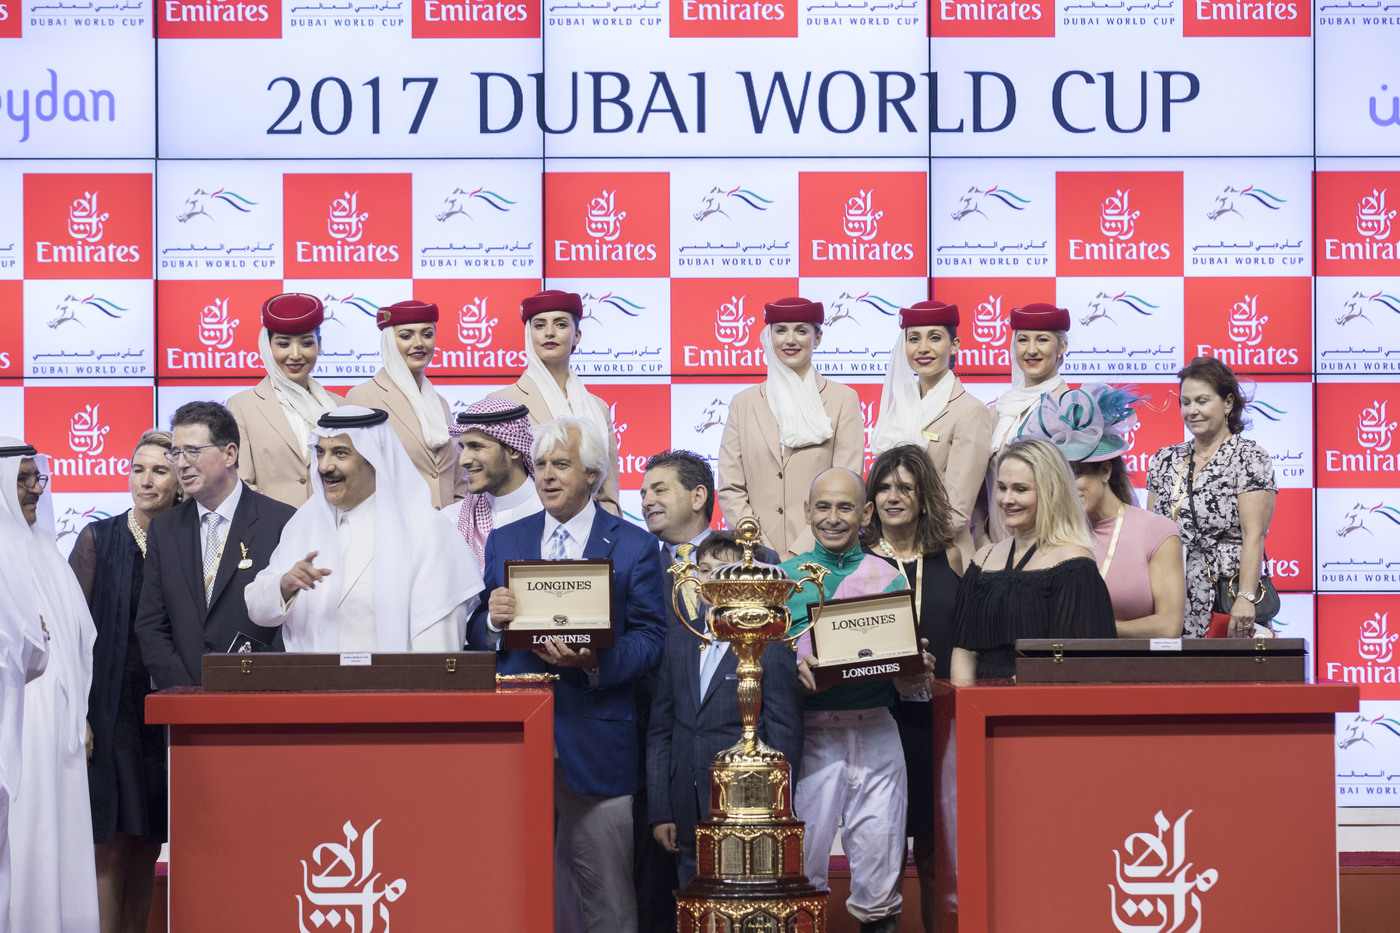 Longines Flat Racing Event: Arrogate, the 2016 Longines World's Best Racehorse, won the Dubai World Cup 4